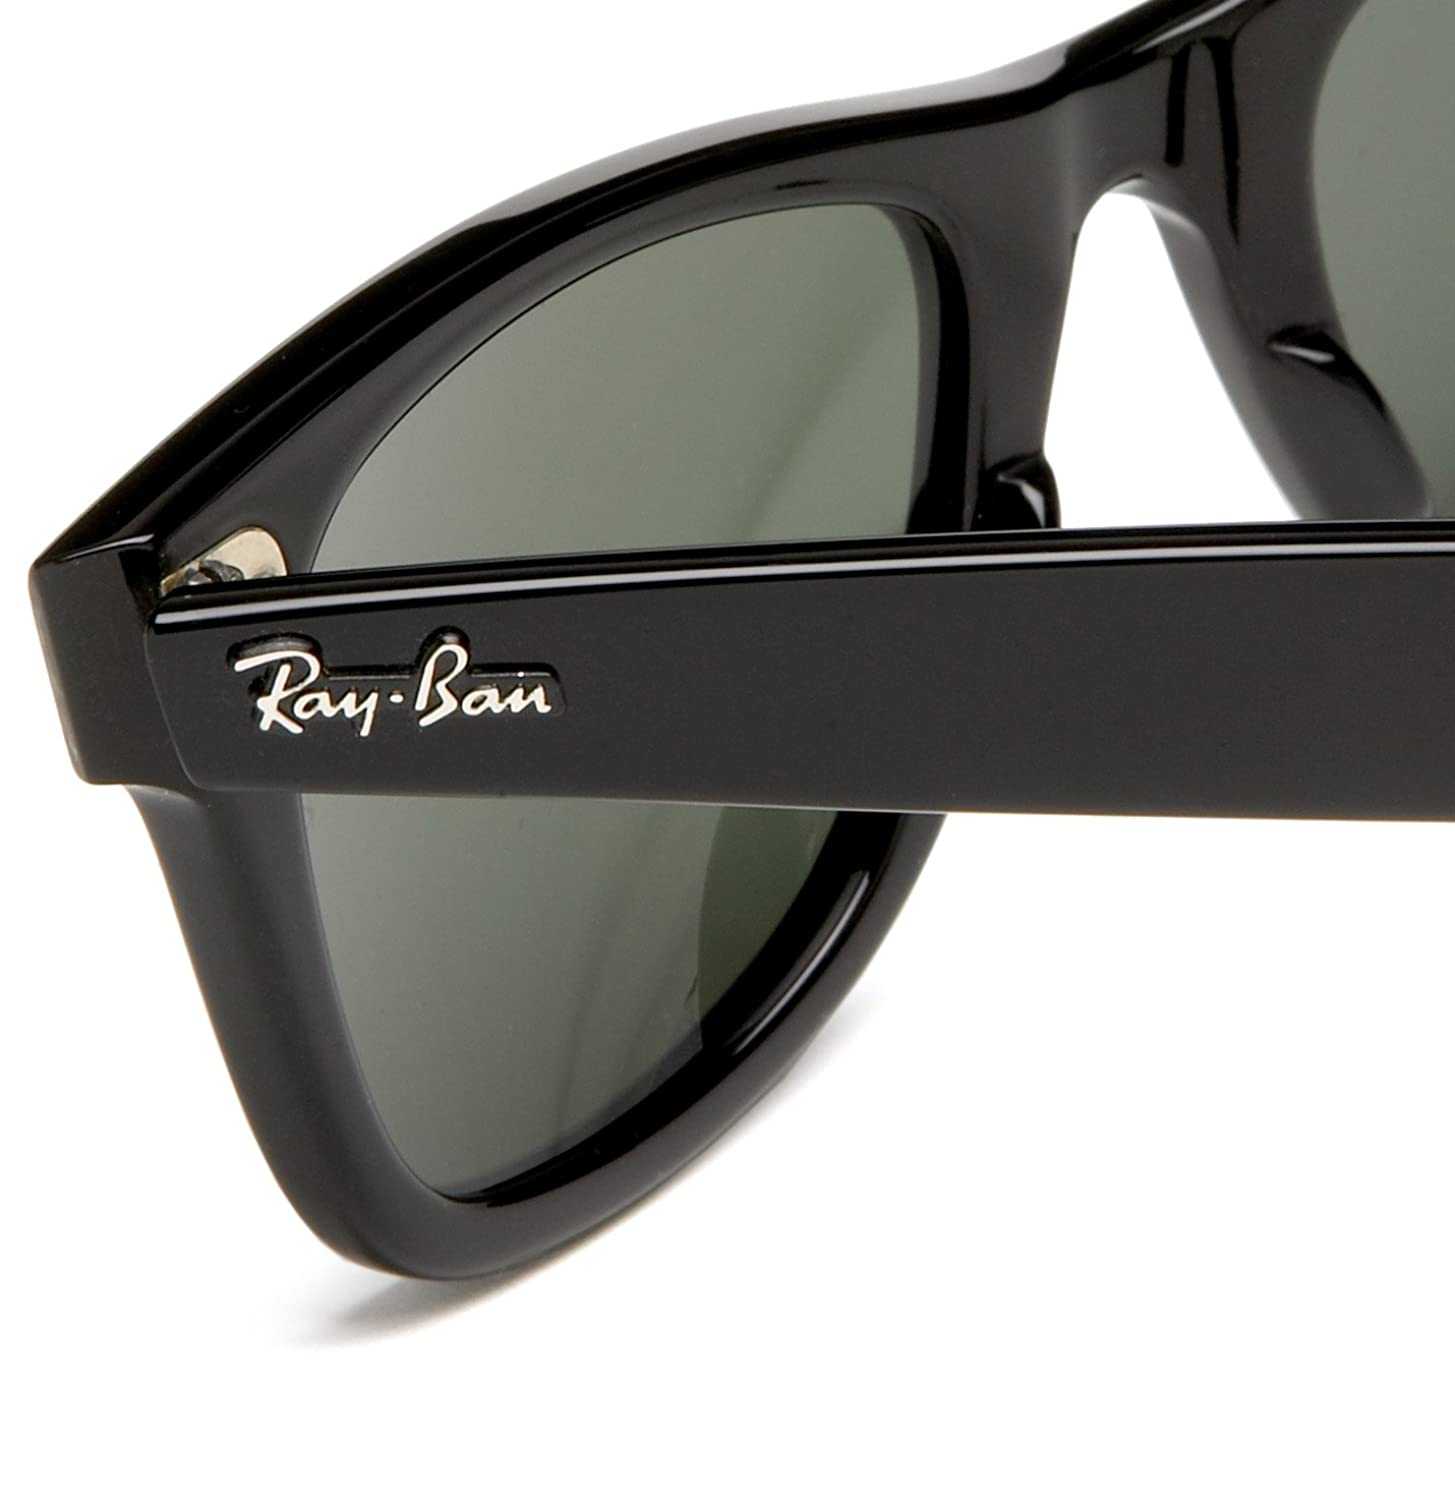 ray ban rb2140 original wayfarer sunglasses  amazon: ray ban wayfarer black frame crystal green lenses 54mm non polarized: ray ban: clothing